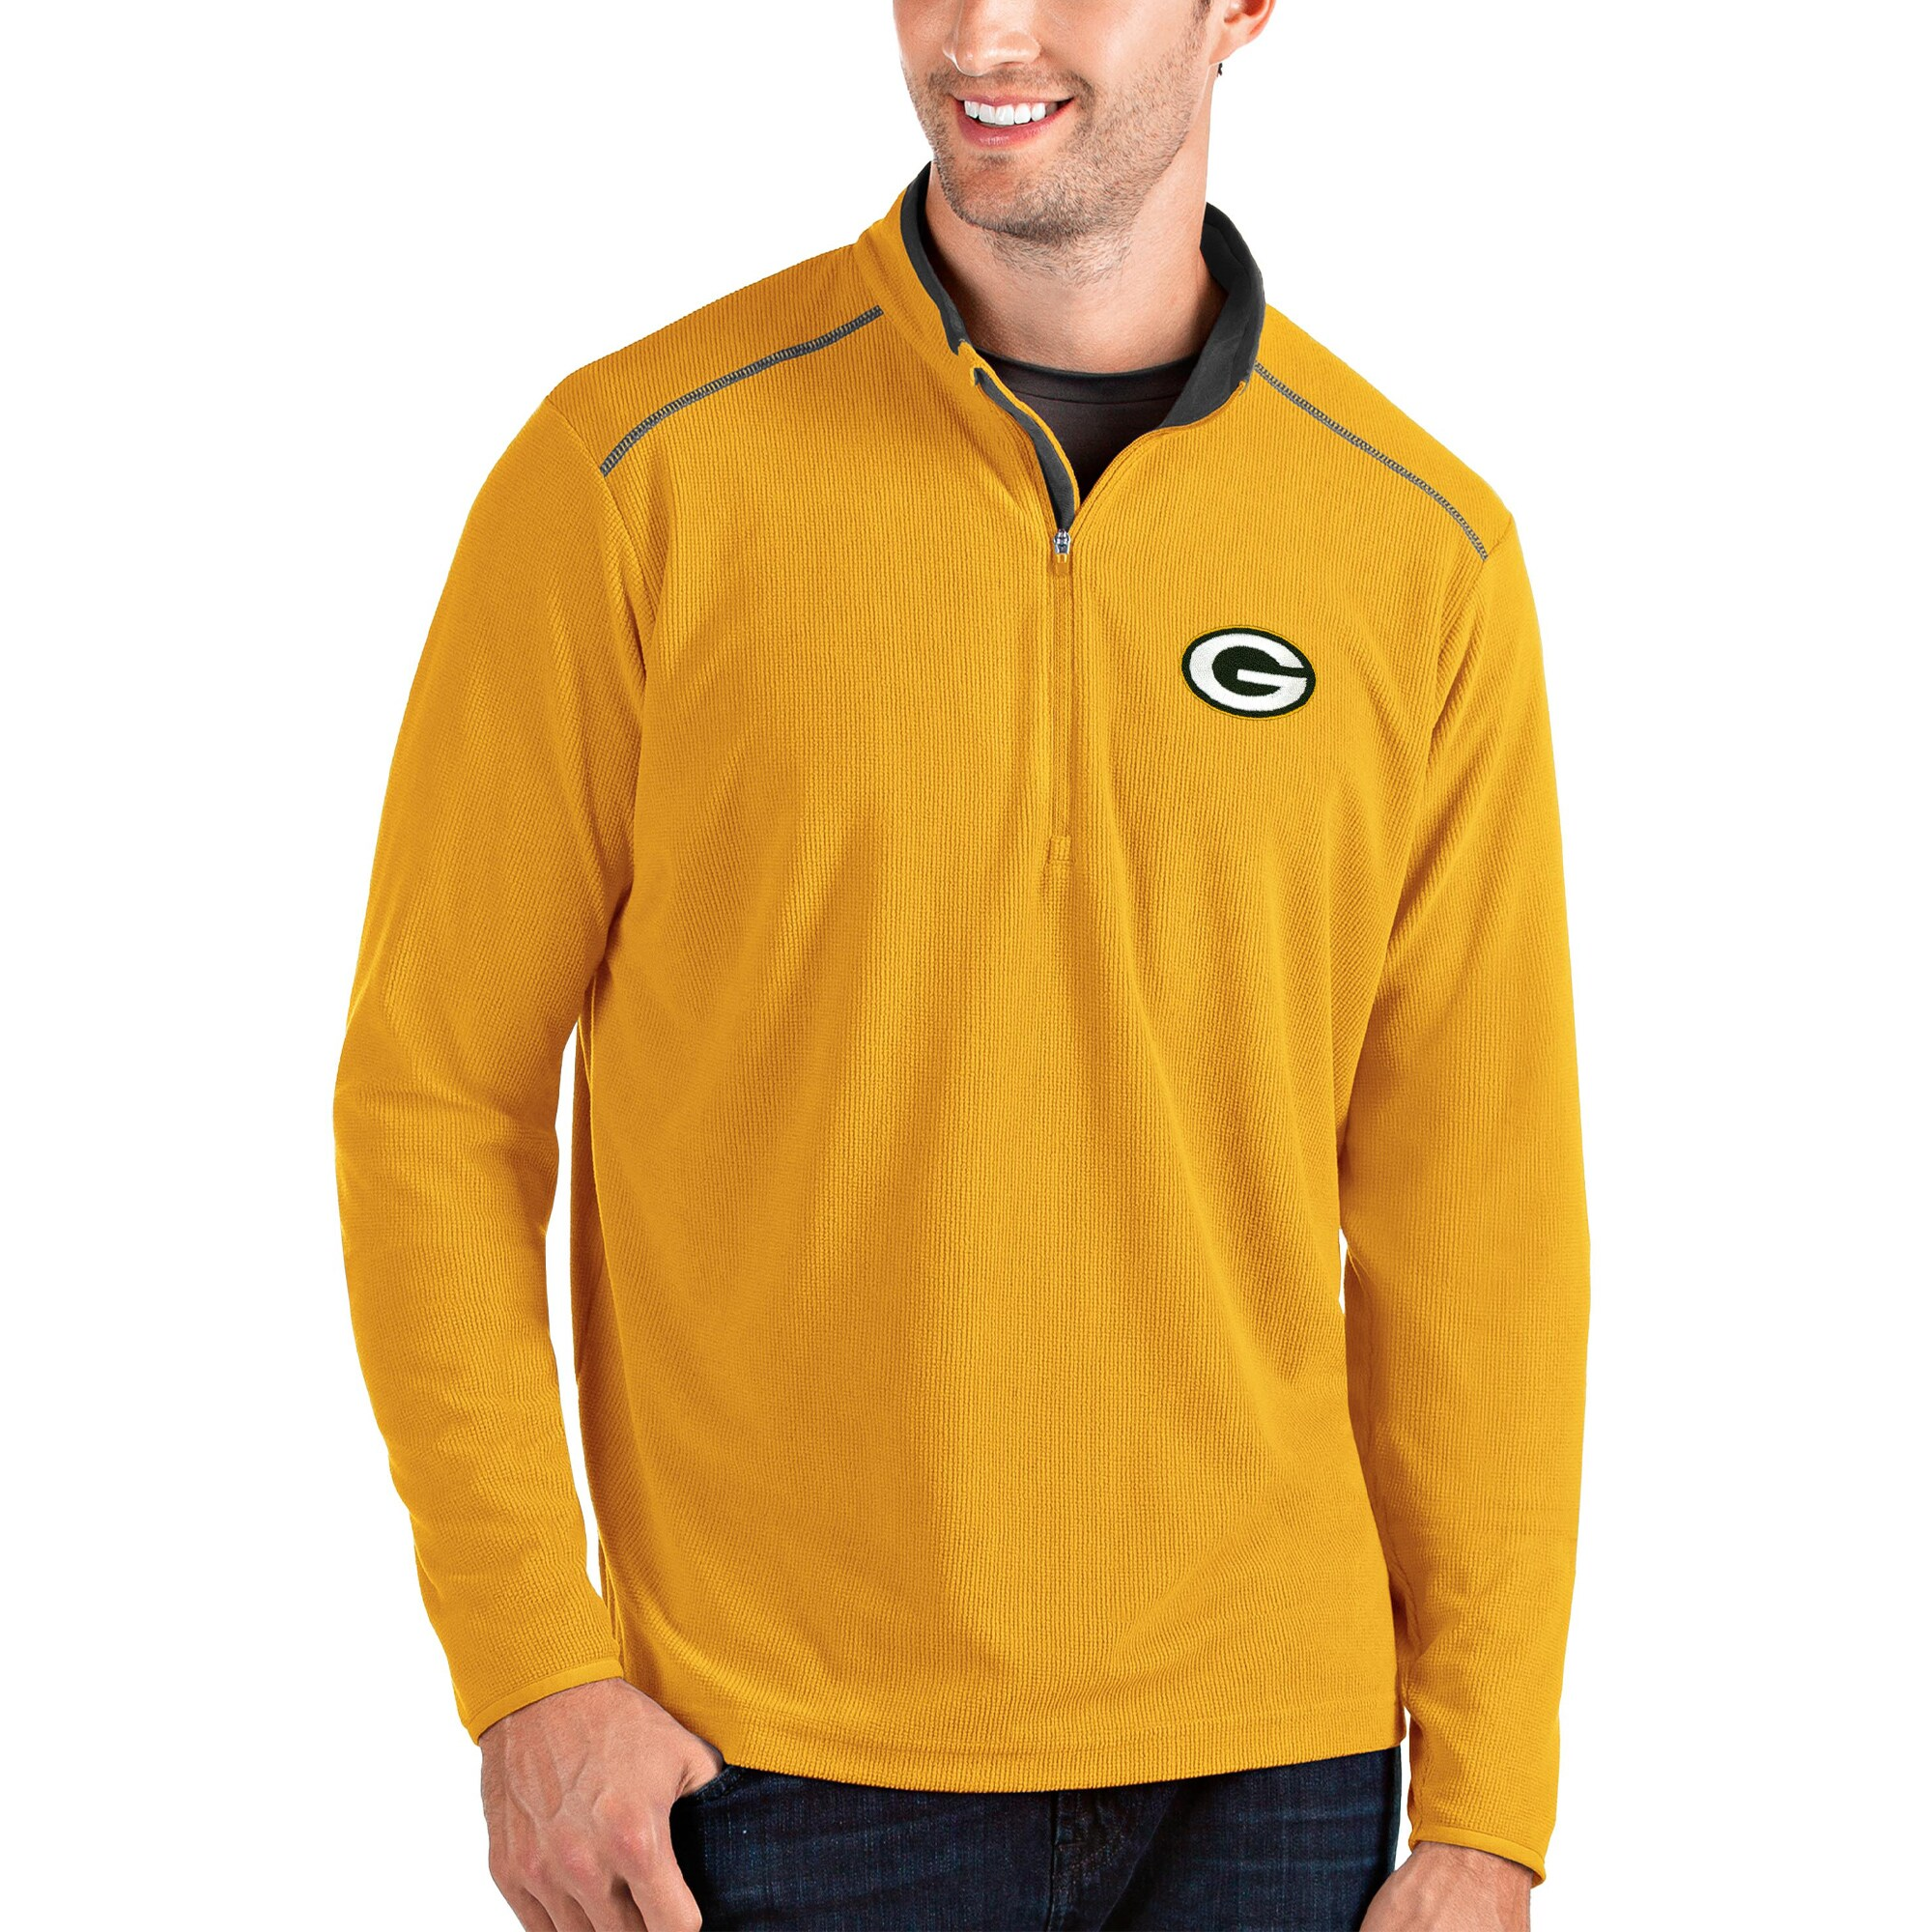 Green Bay Packers Antigua Glacier Quarter-Zip Pullover Jacket - Gold/Gray